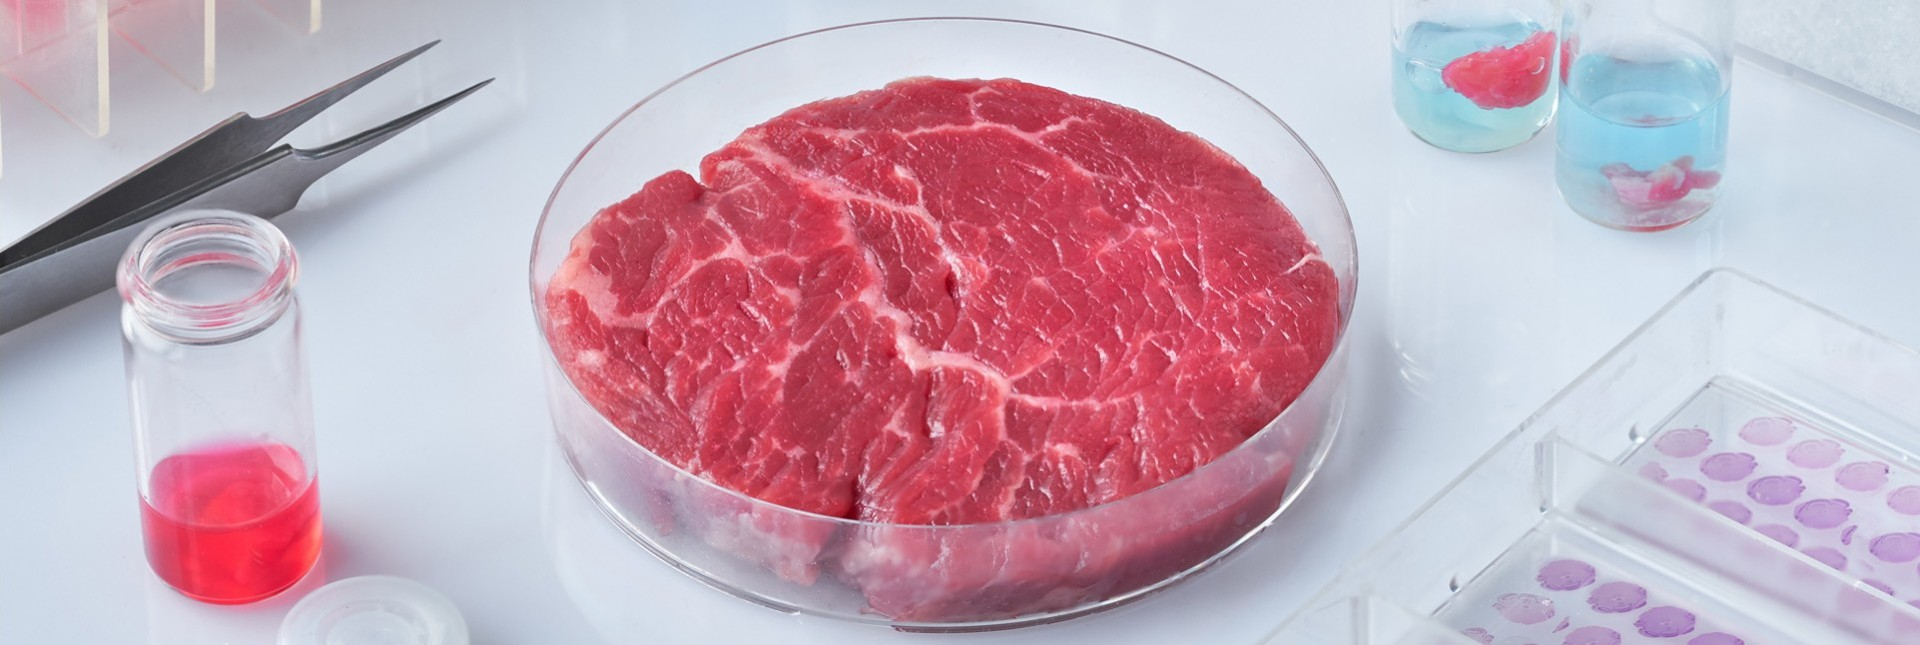 Cultured Meat: Better Than The Real Thing?